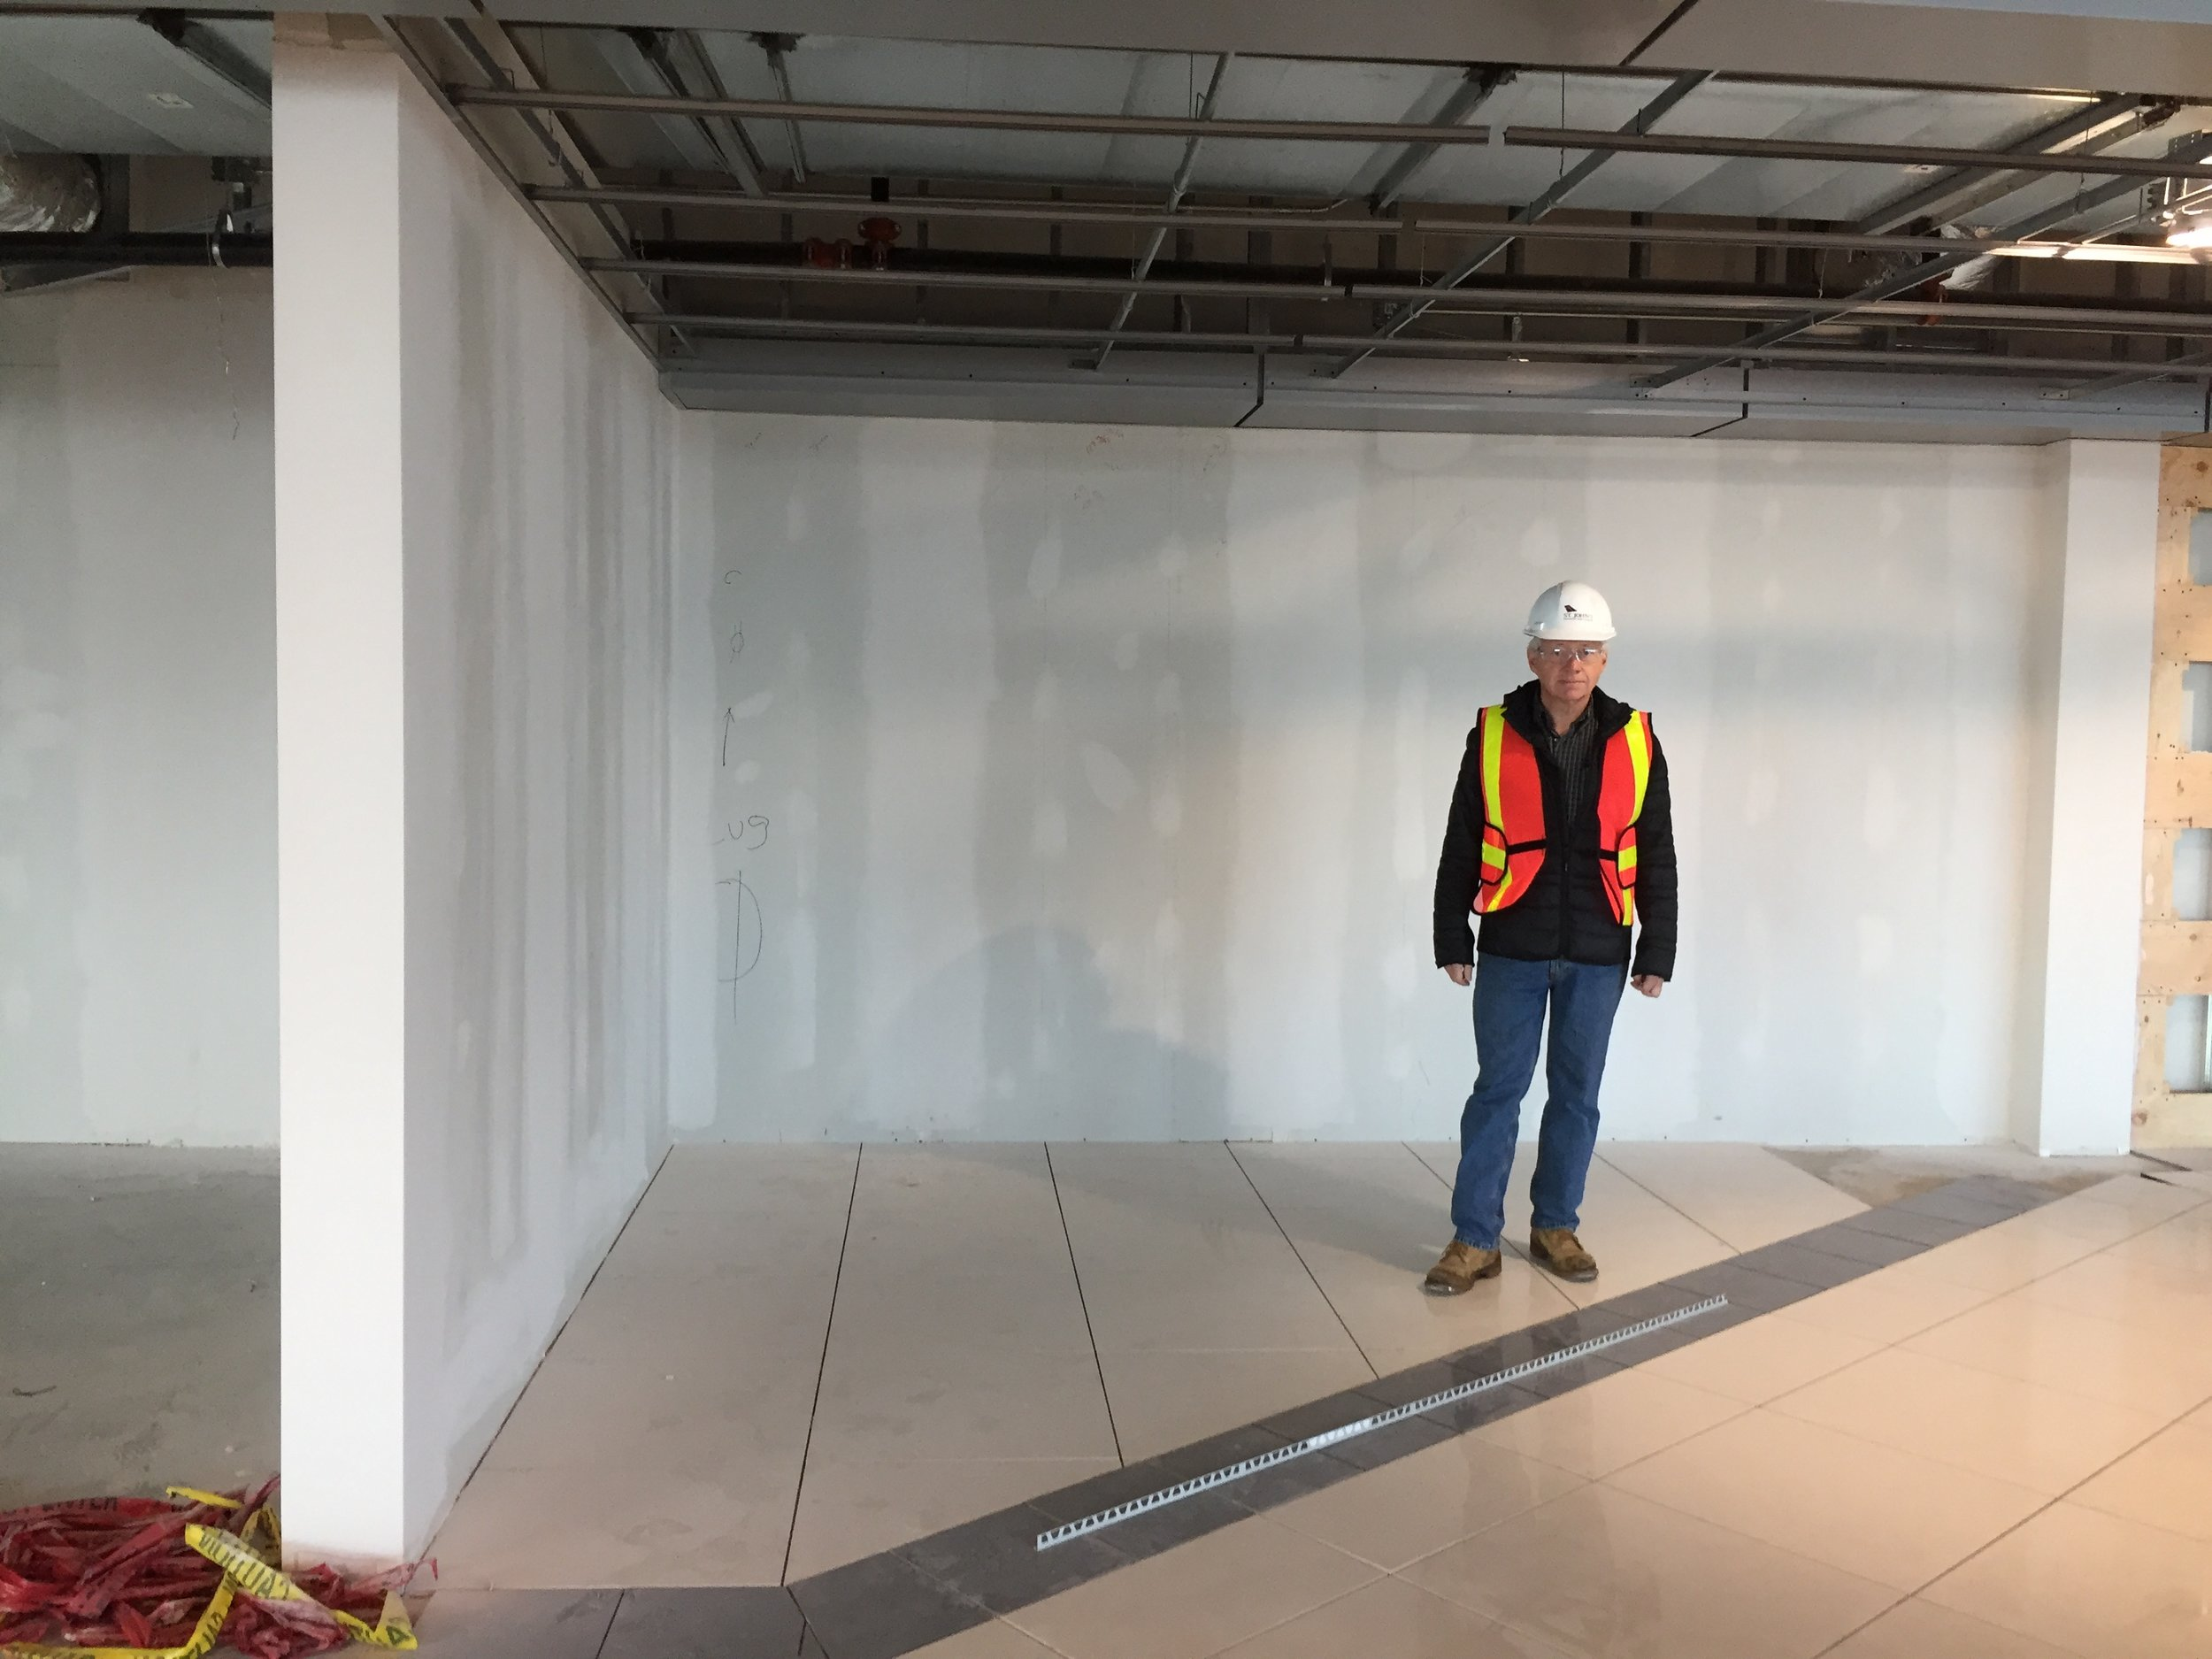 The new retail space for the Airport Heritage Shop is currently under construction. It will open in Summer 2018 with the eastern expansion of the St. John's International Airport's departures lounge.